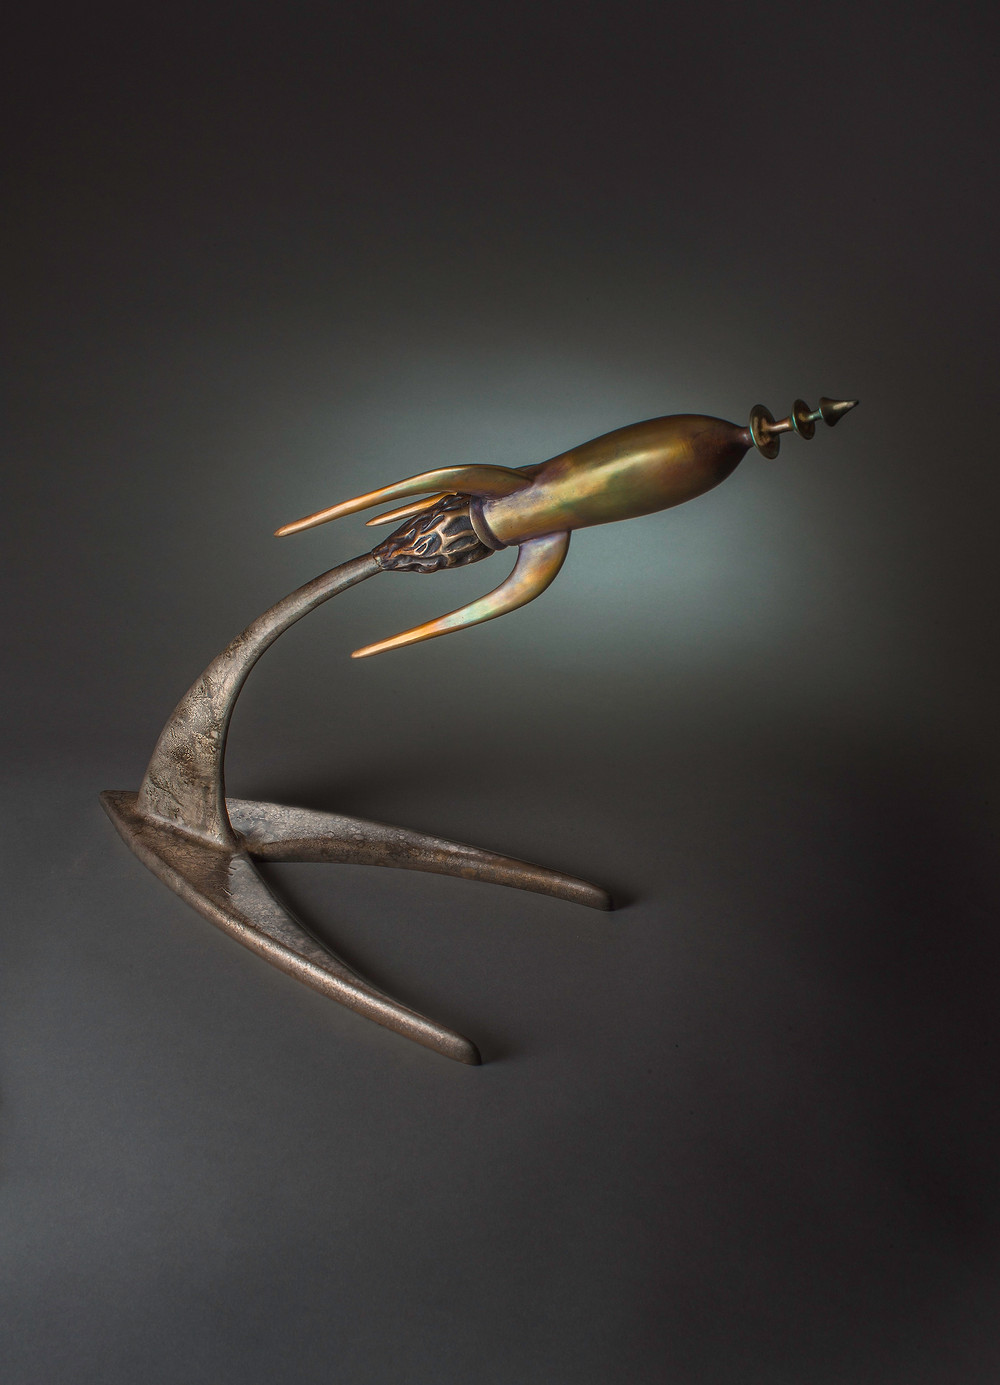 https://www.eriklindbergh.com/product-page/retro-rocketship-signed-limited-edition-1-15